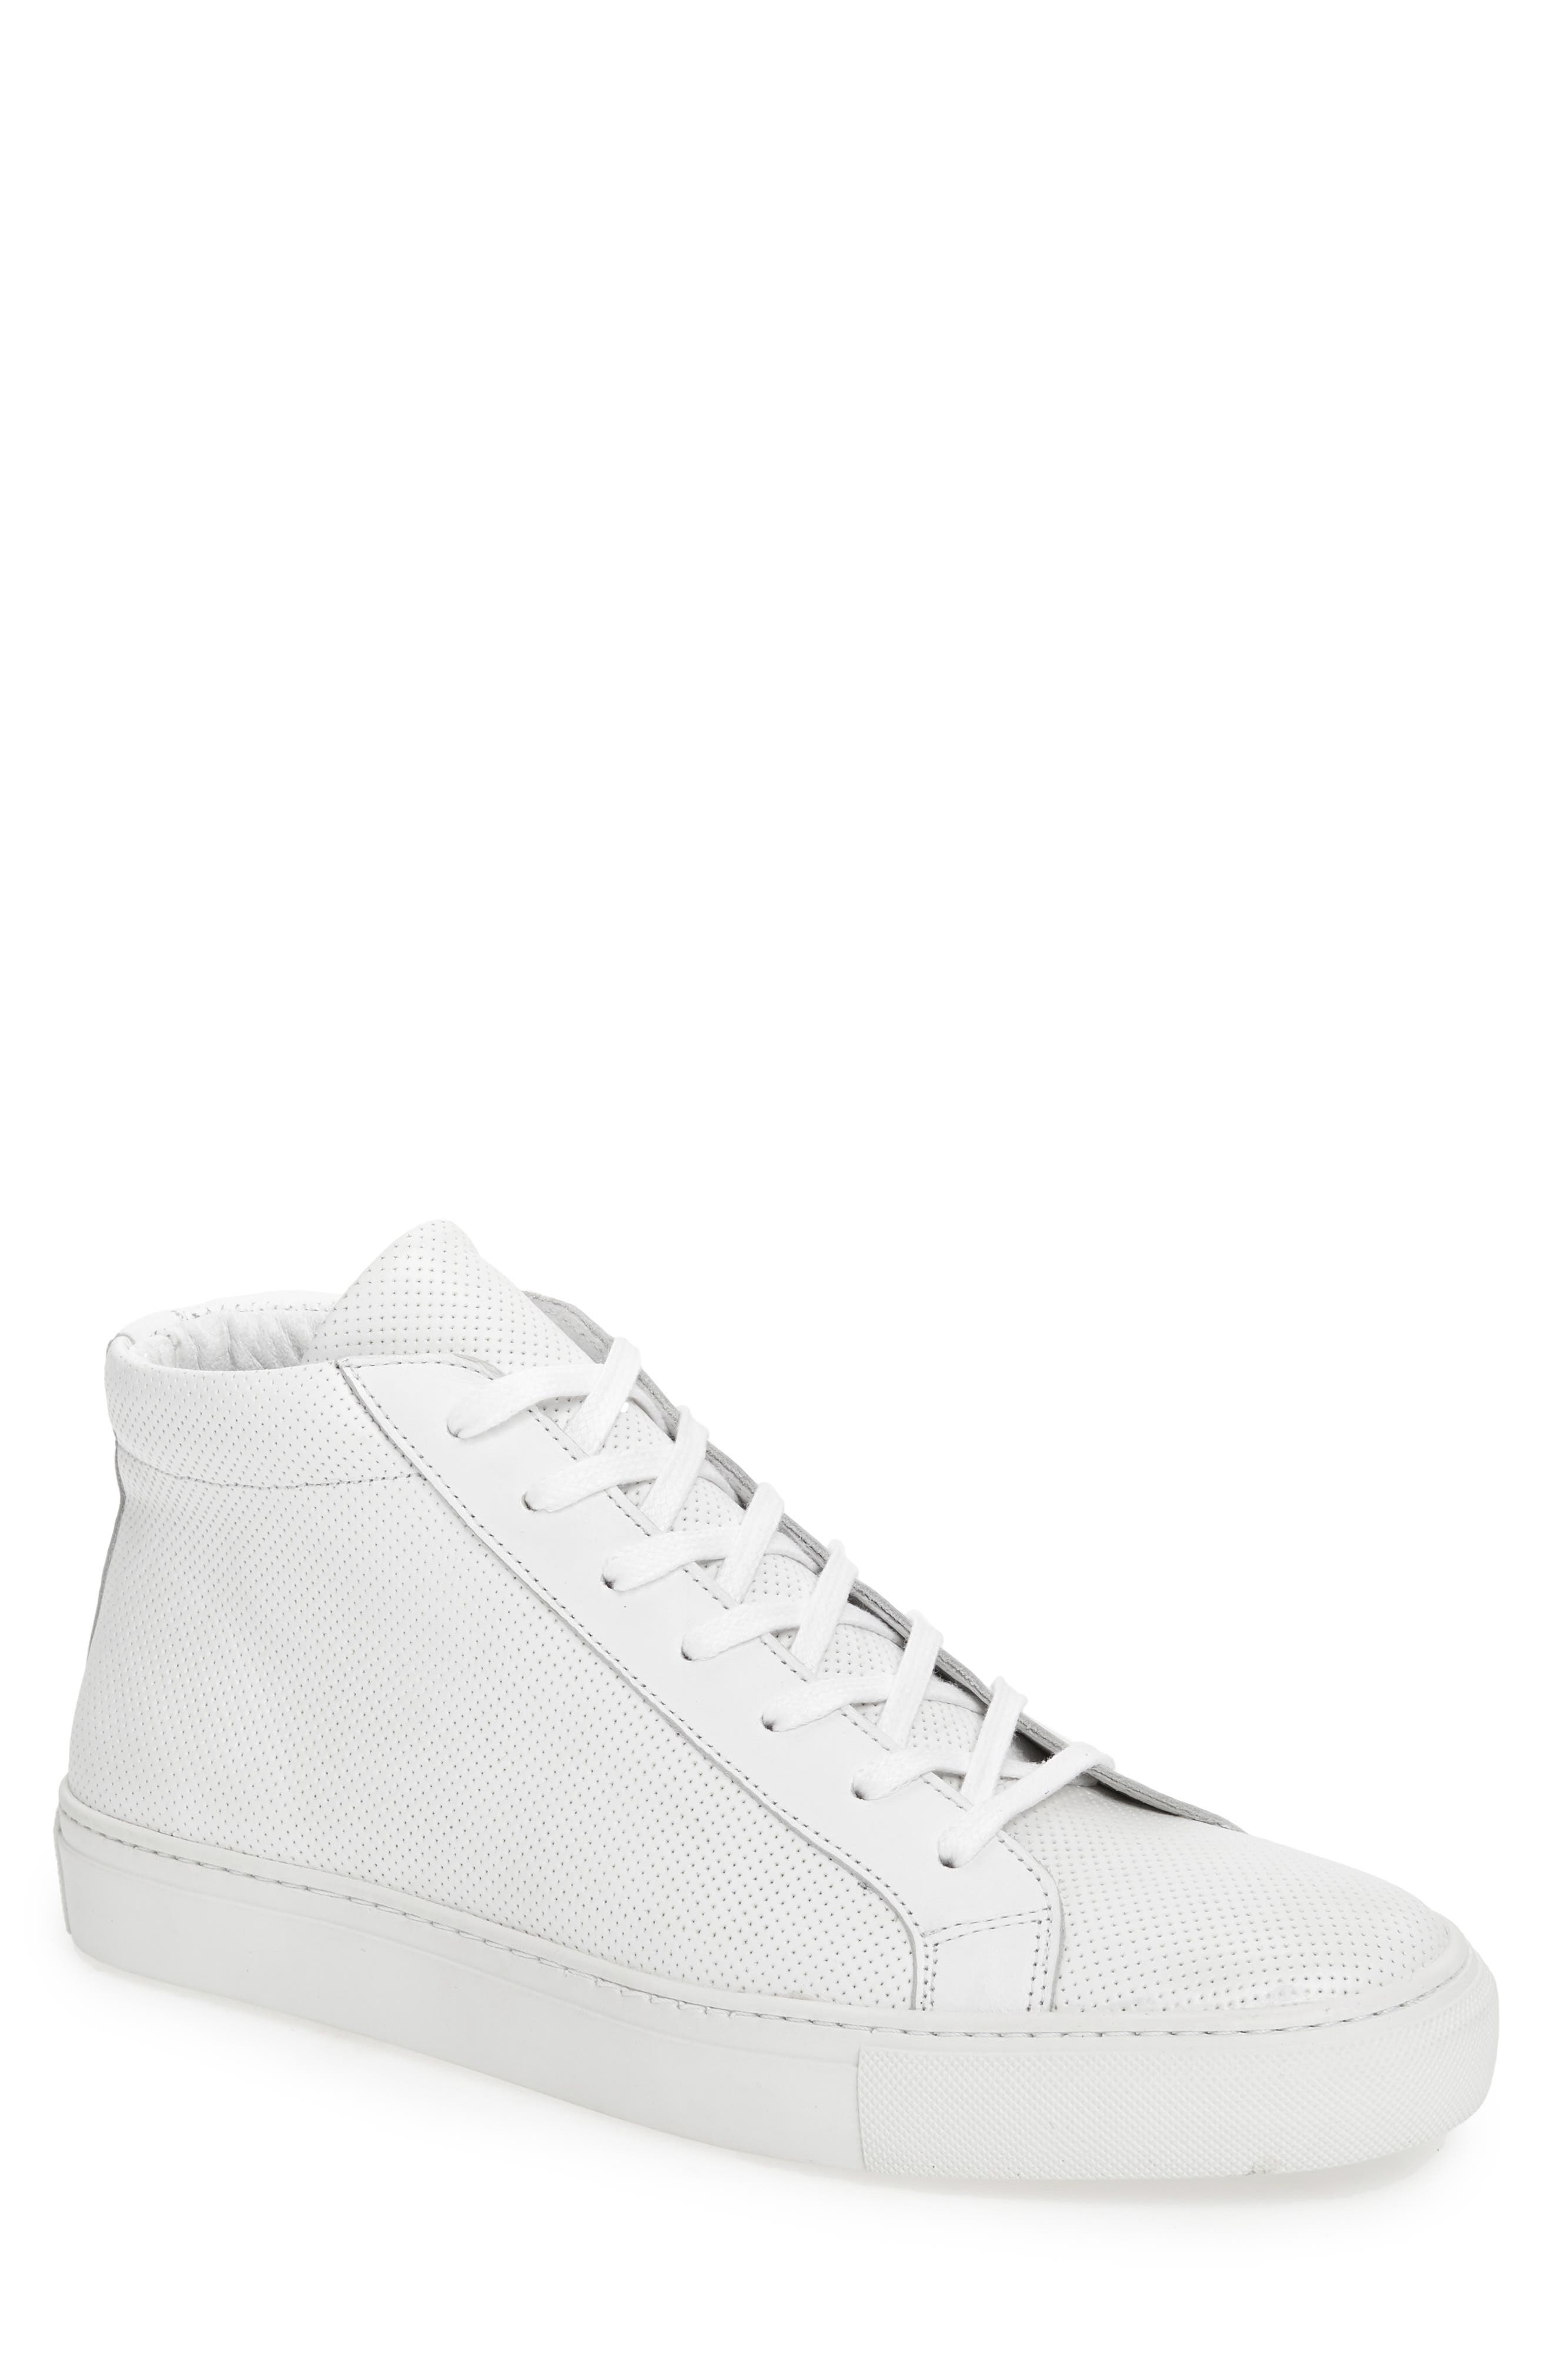 Deacon Mid Sneaker,                         Main,                         color, WHITE PERFORATED LEATHER